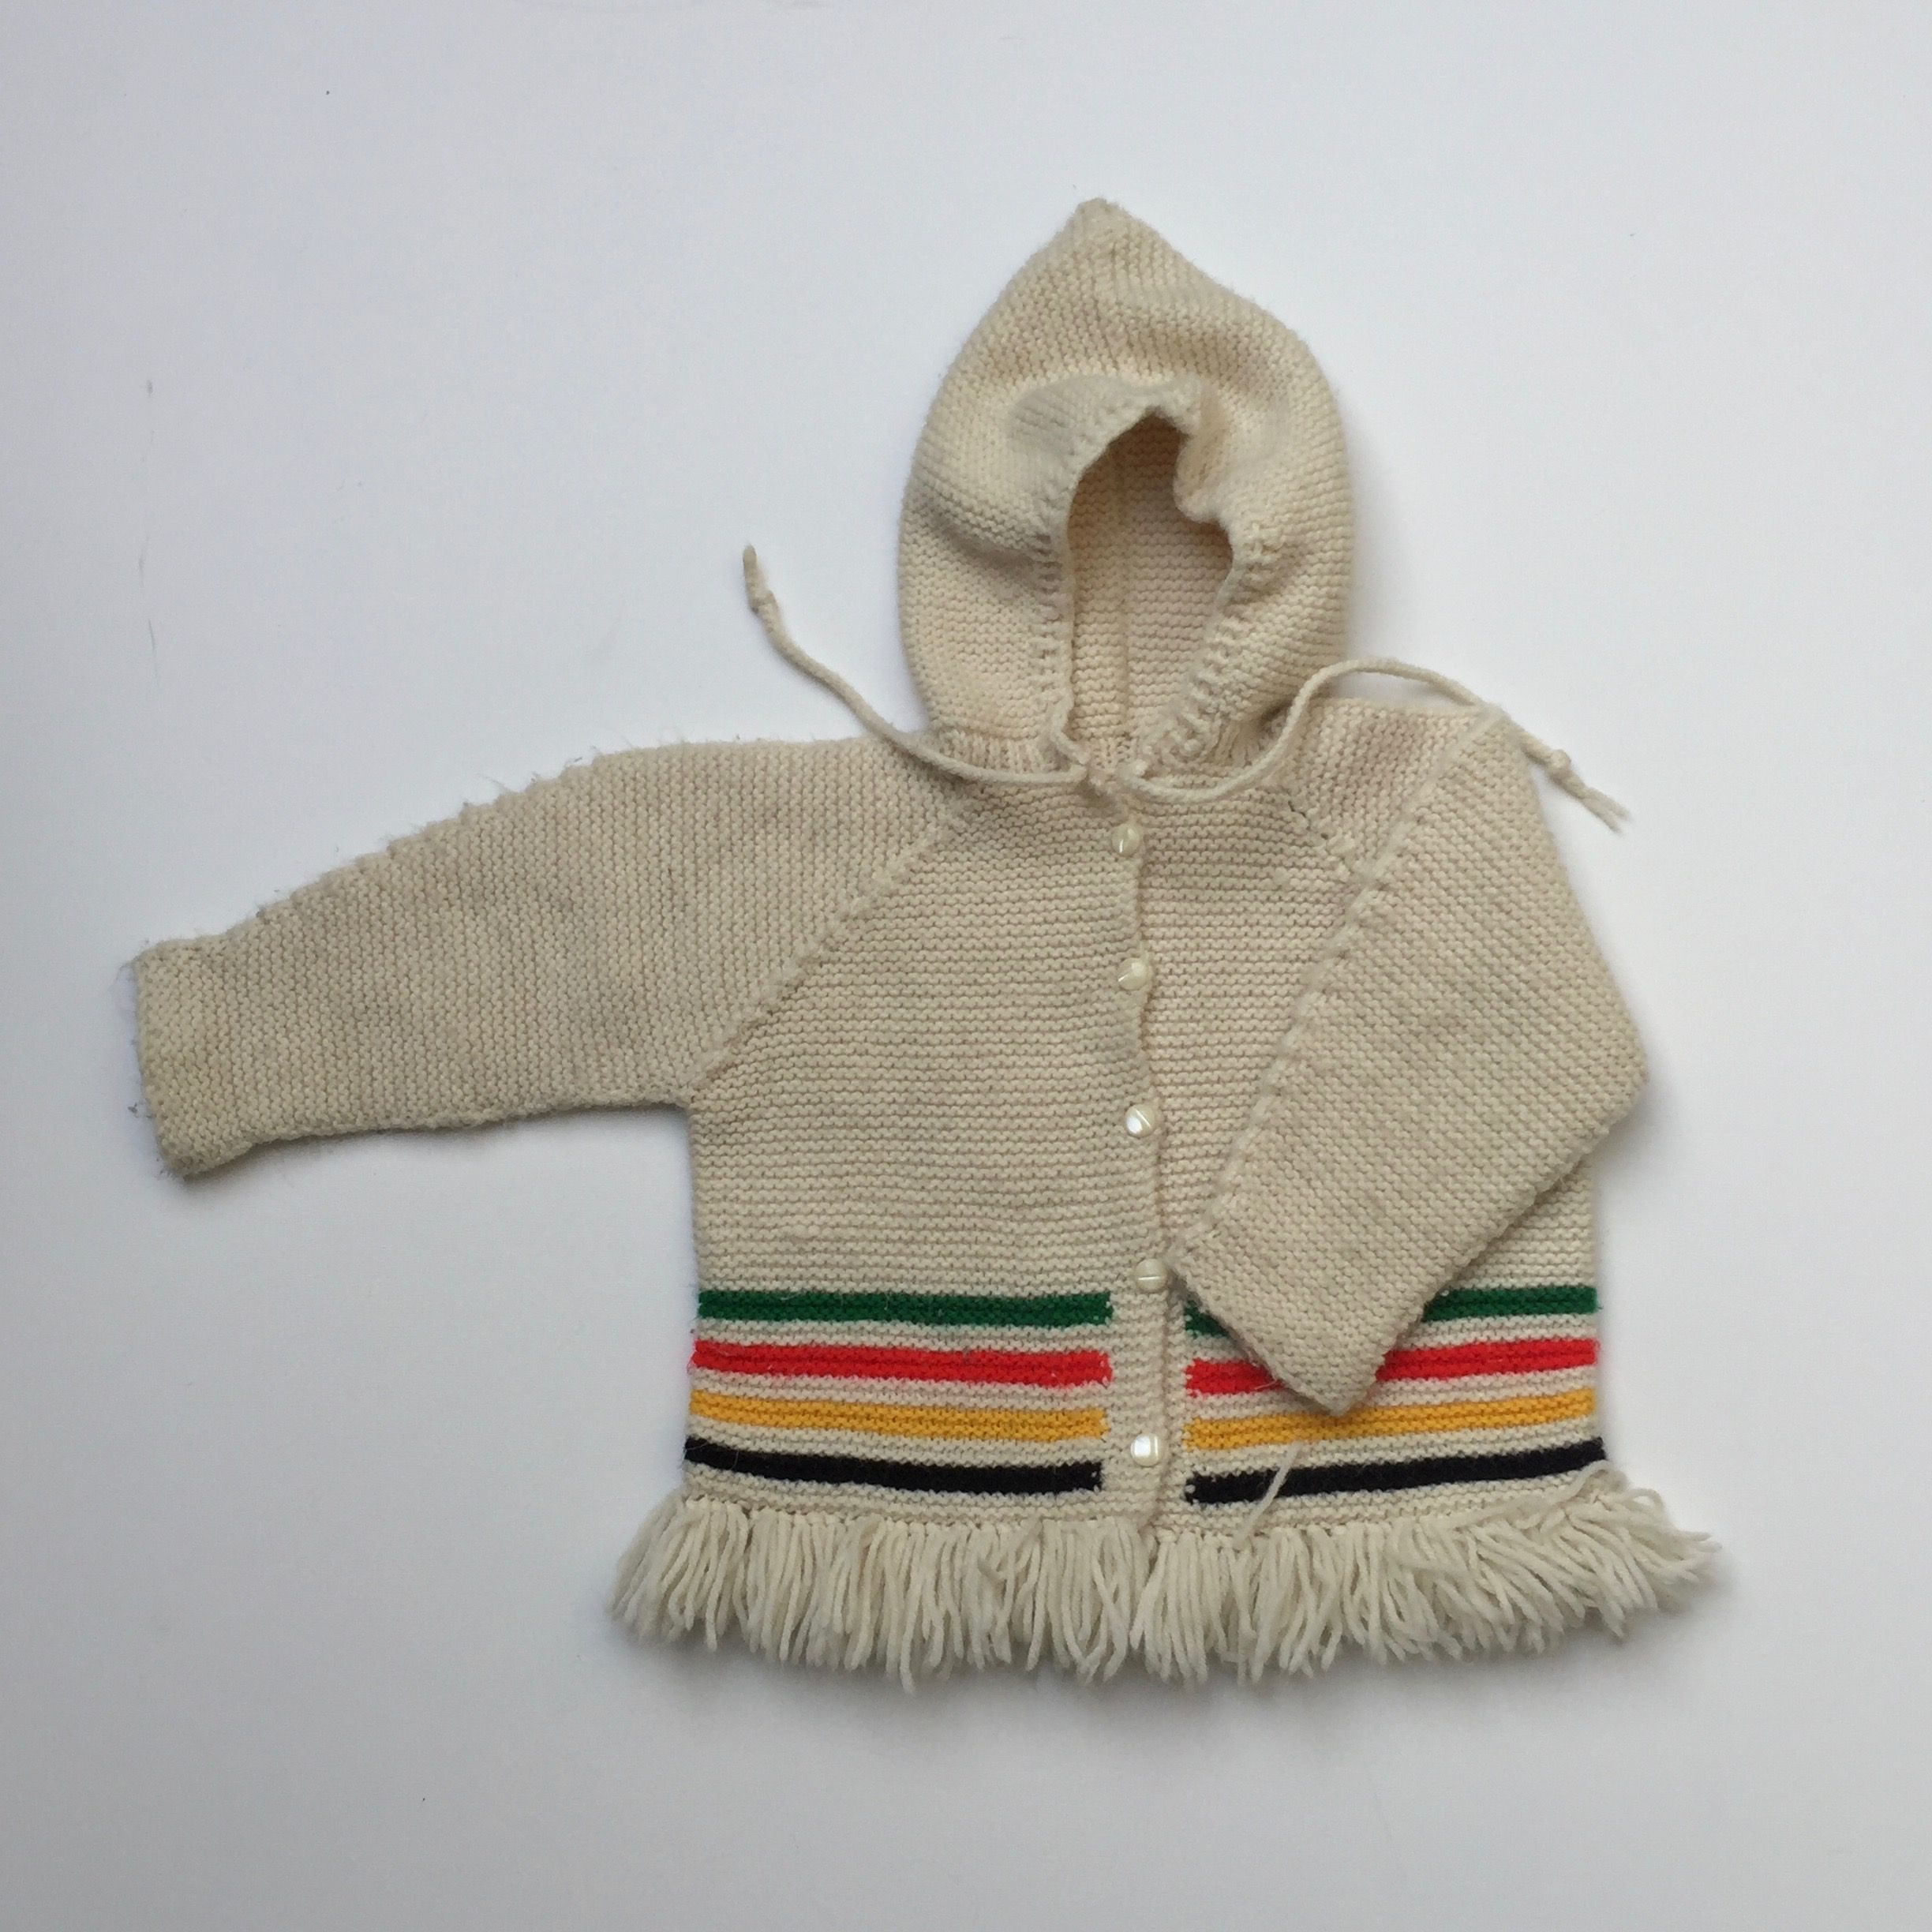 """Hand knit hooded sweater coat. Approximate size 2/3T. Please refer to measurements for best fit. Measures 15"""" pit to pit and 15"""" shoulder to hem."""